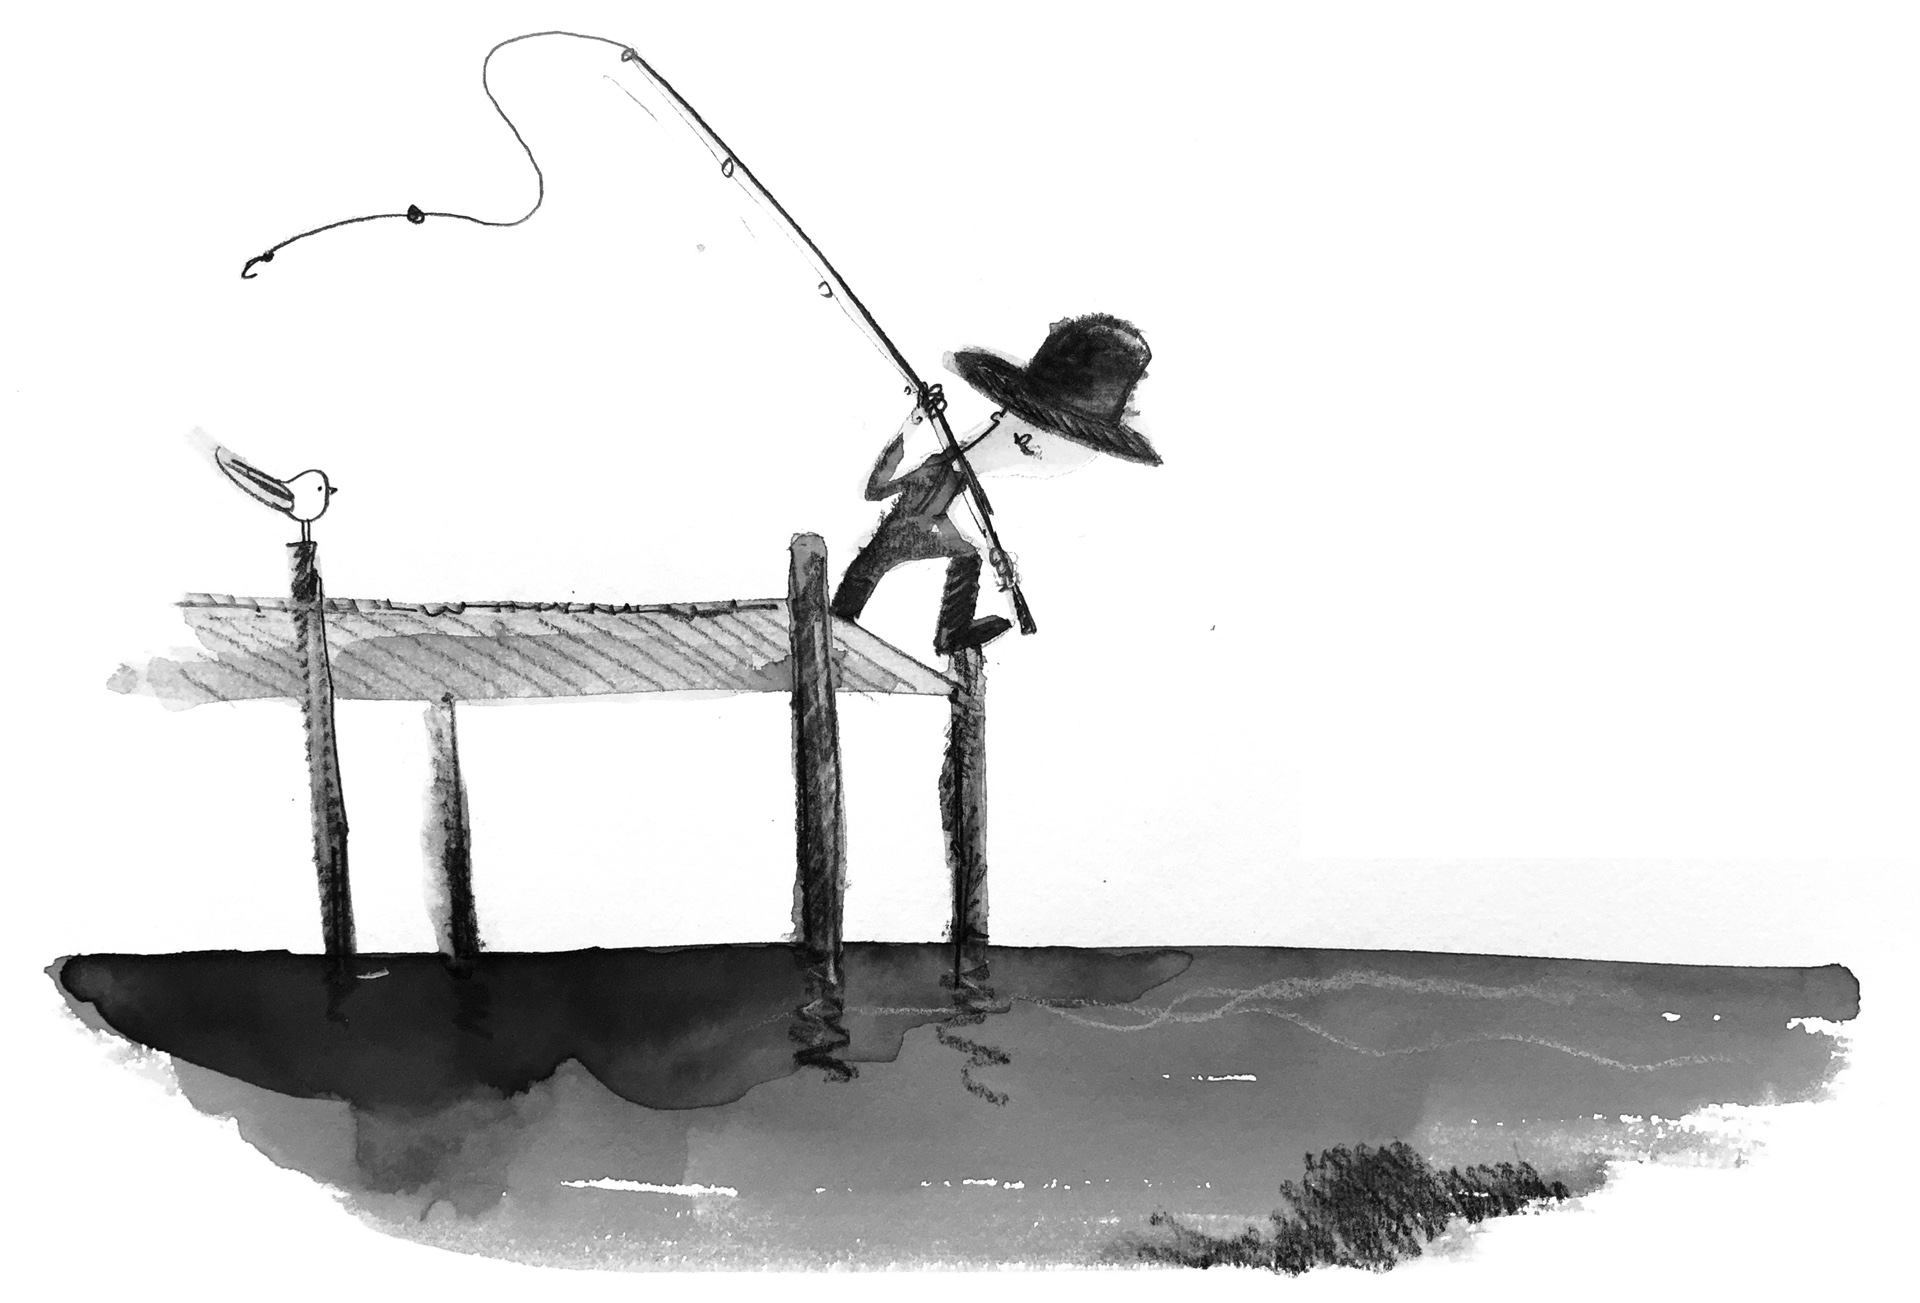 Illustration of a fisherman casting his line off of a pier